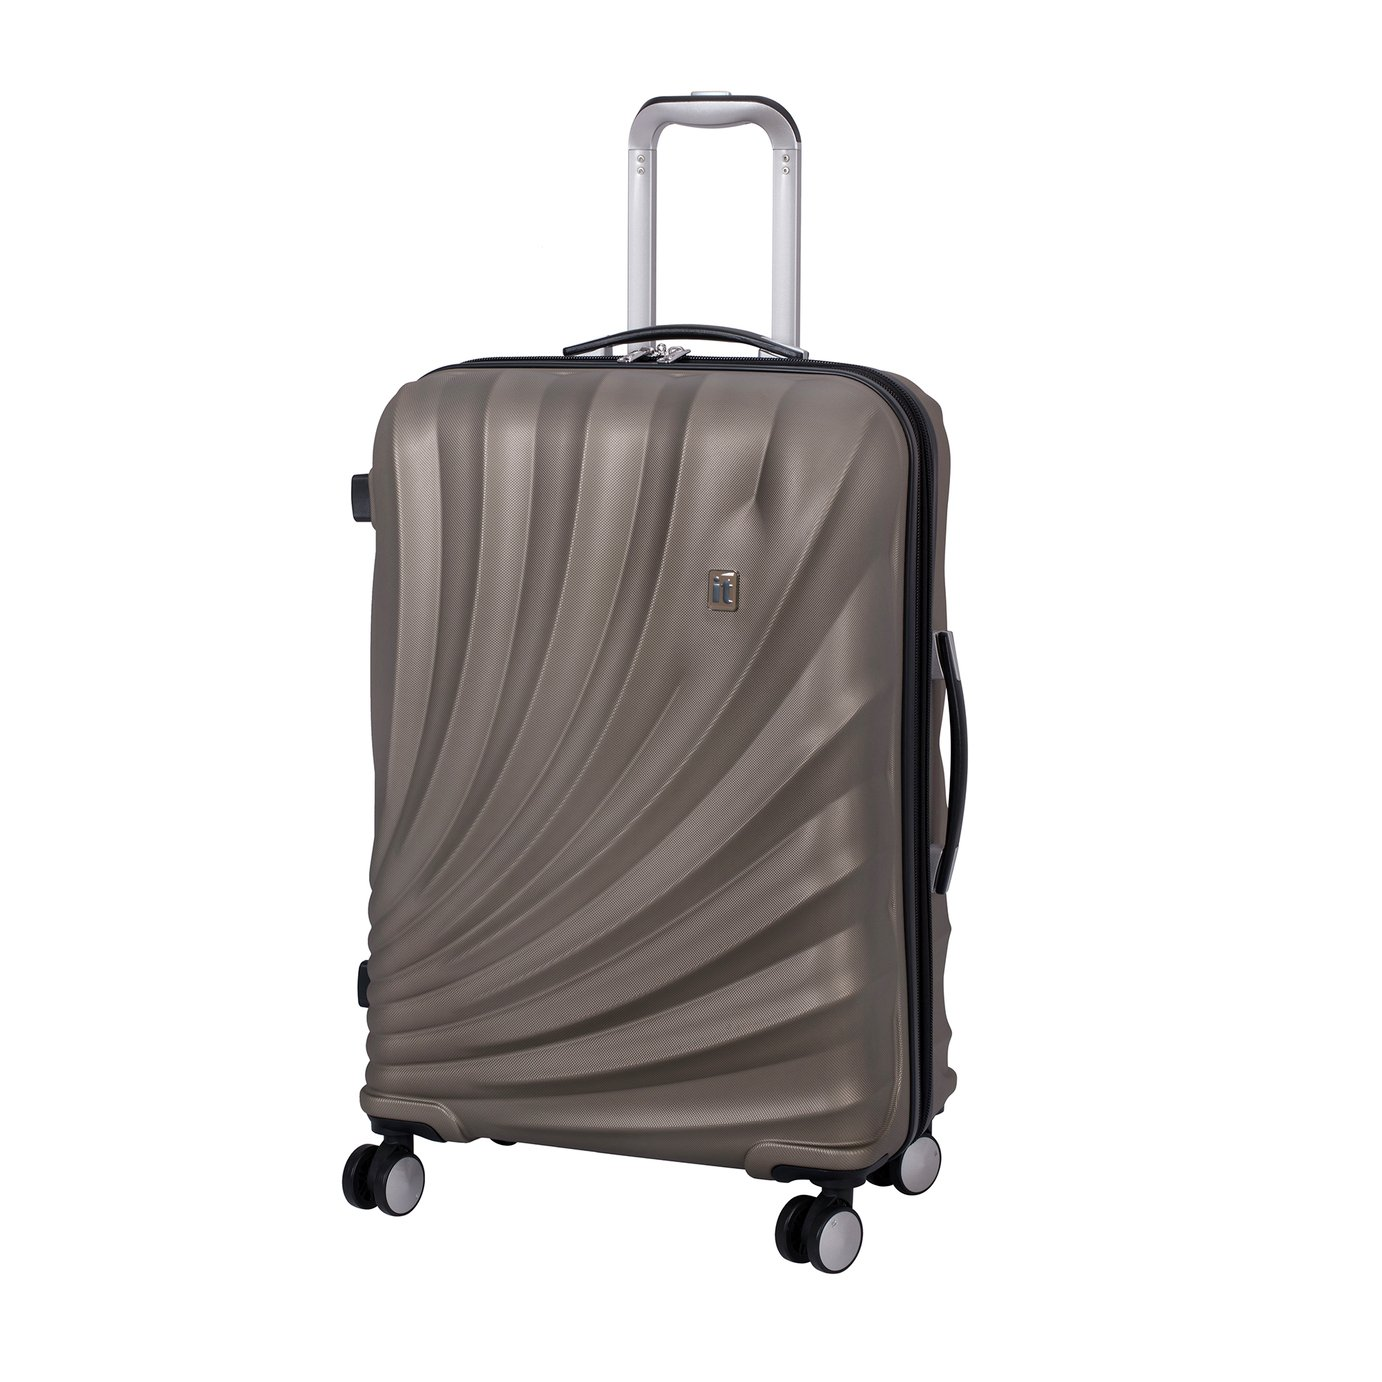 it Luggage Pagoda Medium Expandable 8 Wheel Suitcase - Gold